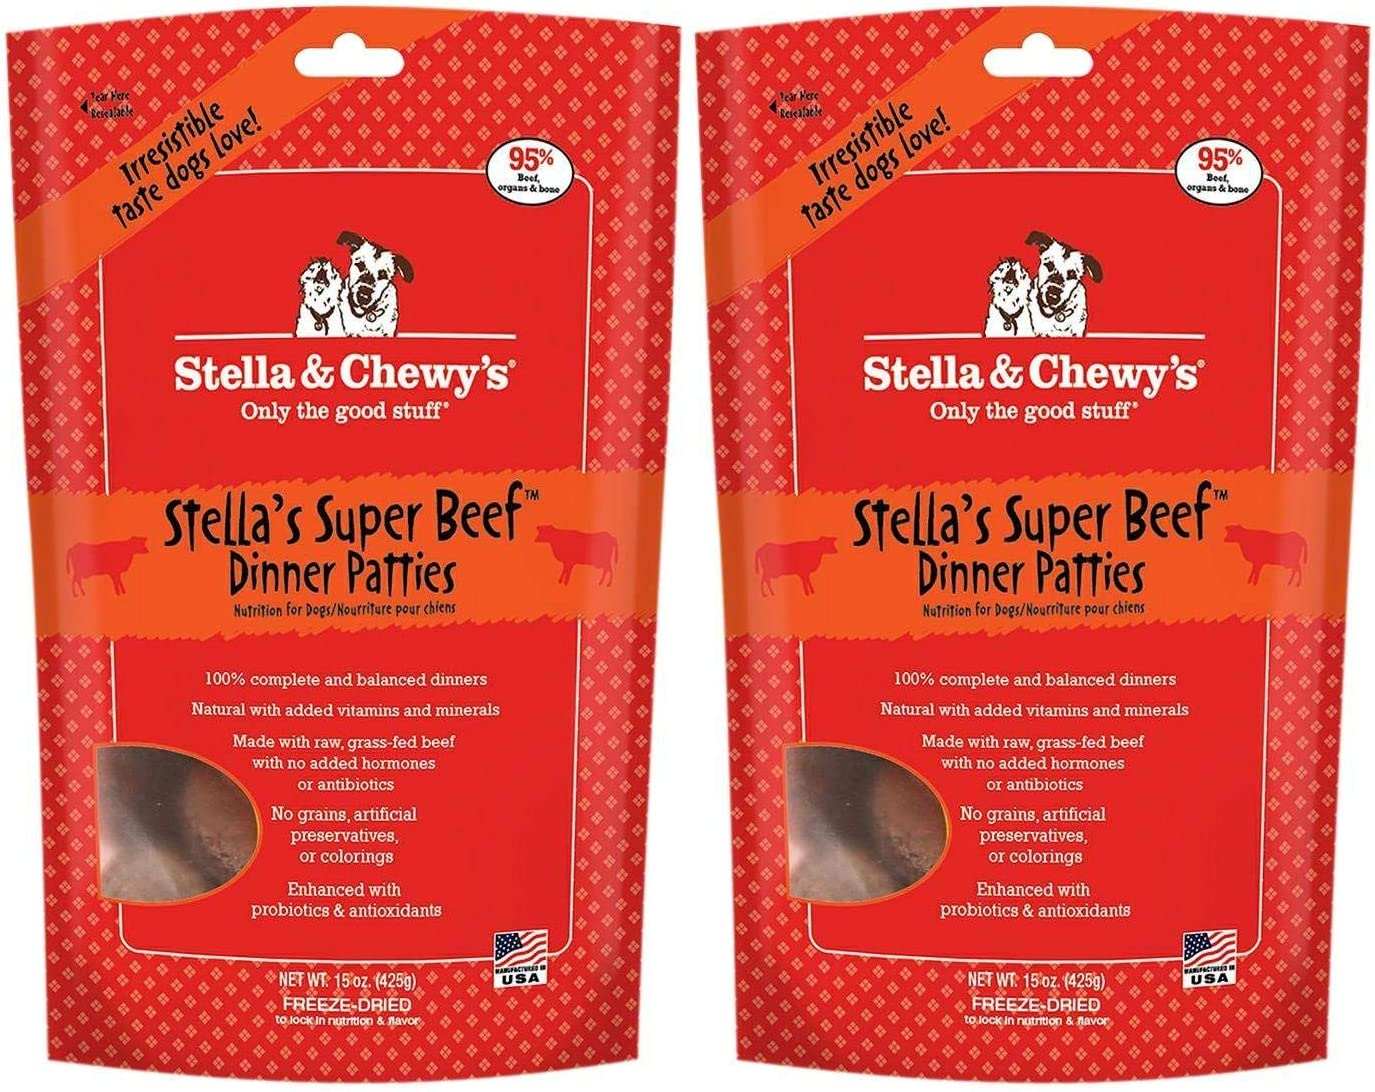 Stella & Chewy's Freeze Dried Dog Food for Adult Dogs, Beef Dinner, 15 Ounce Bag